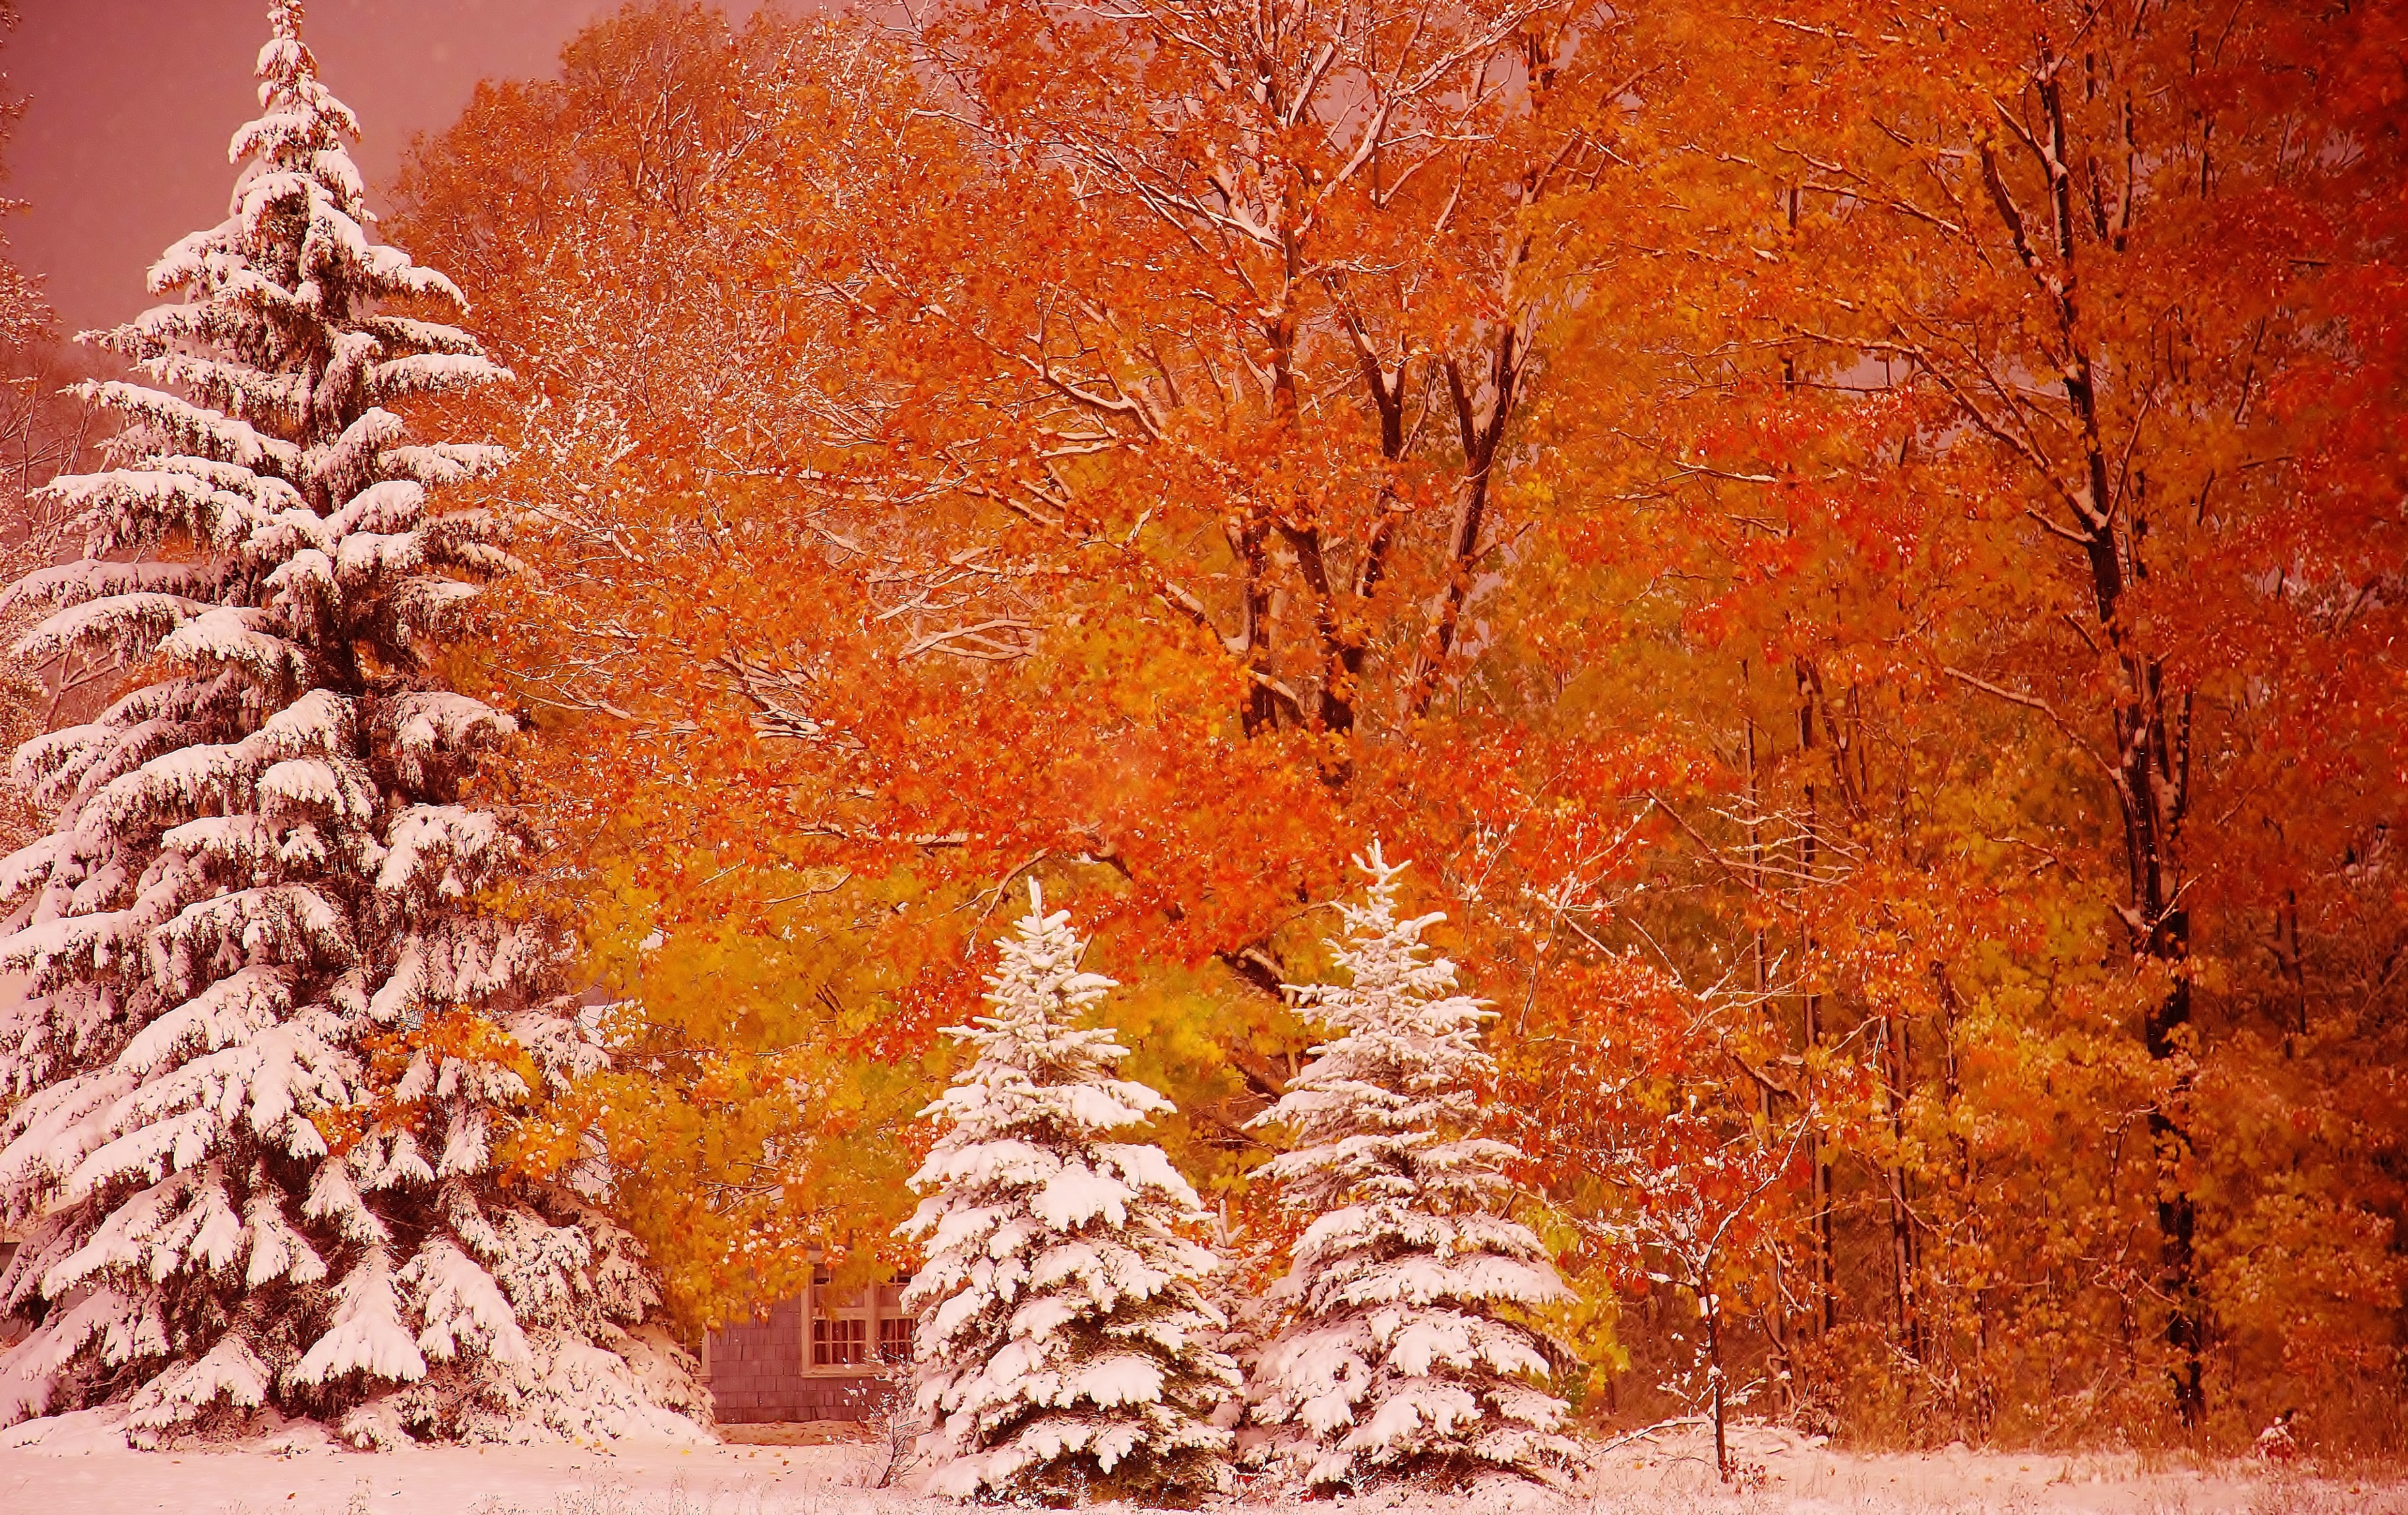 Fall Foliage Iphone Wallpaper First Snow 4k Ultra Hd Wallpaper Background Image